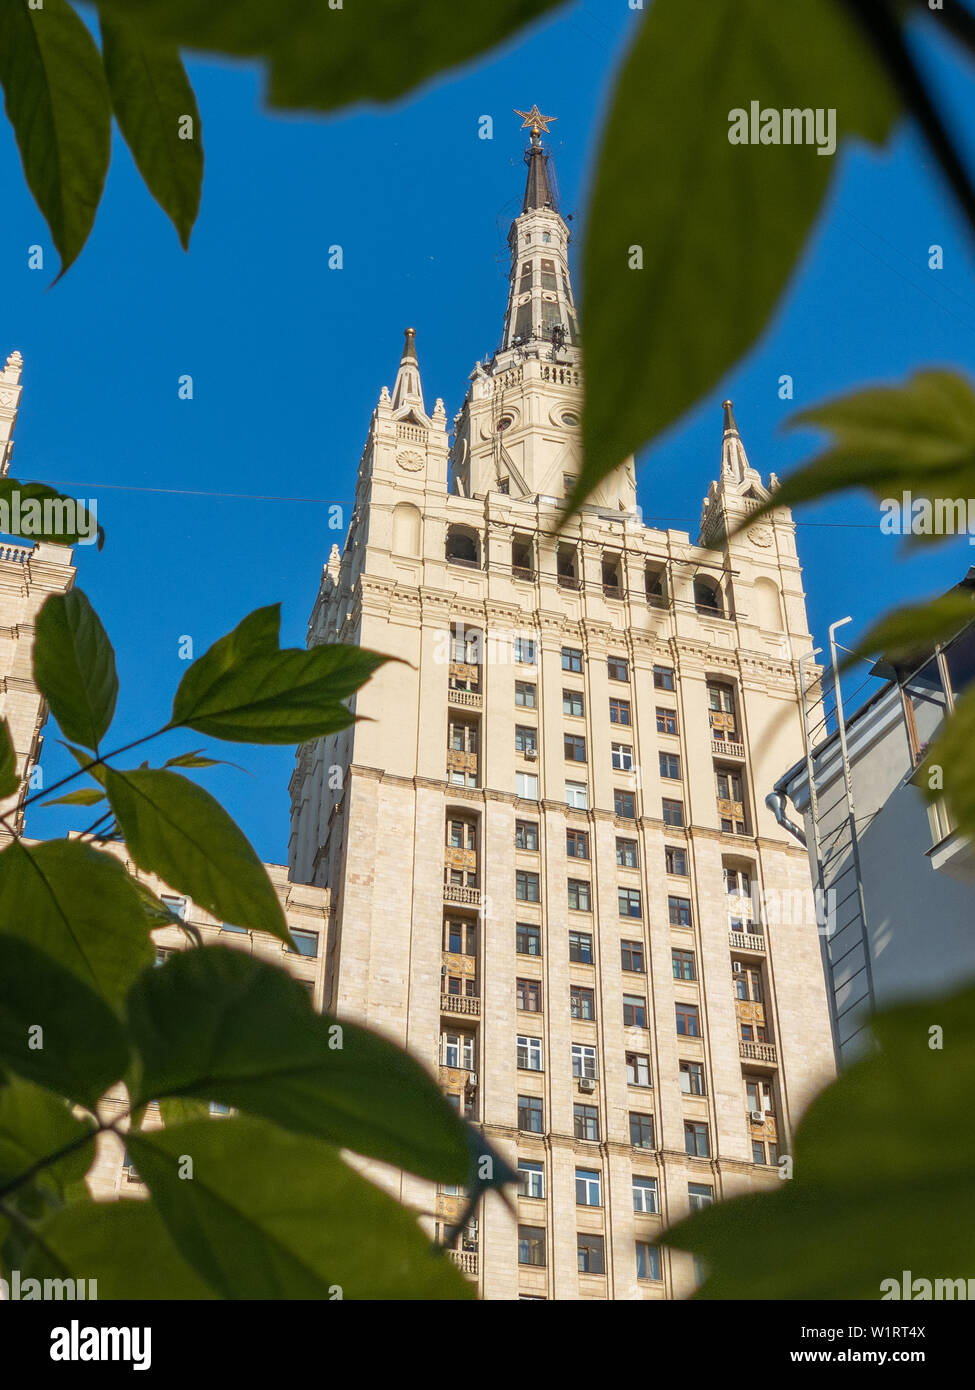 Moscow, Russia - May 20, 2019: The Kudrinskaya Square Building is a building in Moscow, one of seven Stalinist style skyscrapers Stock Photo